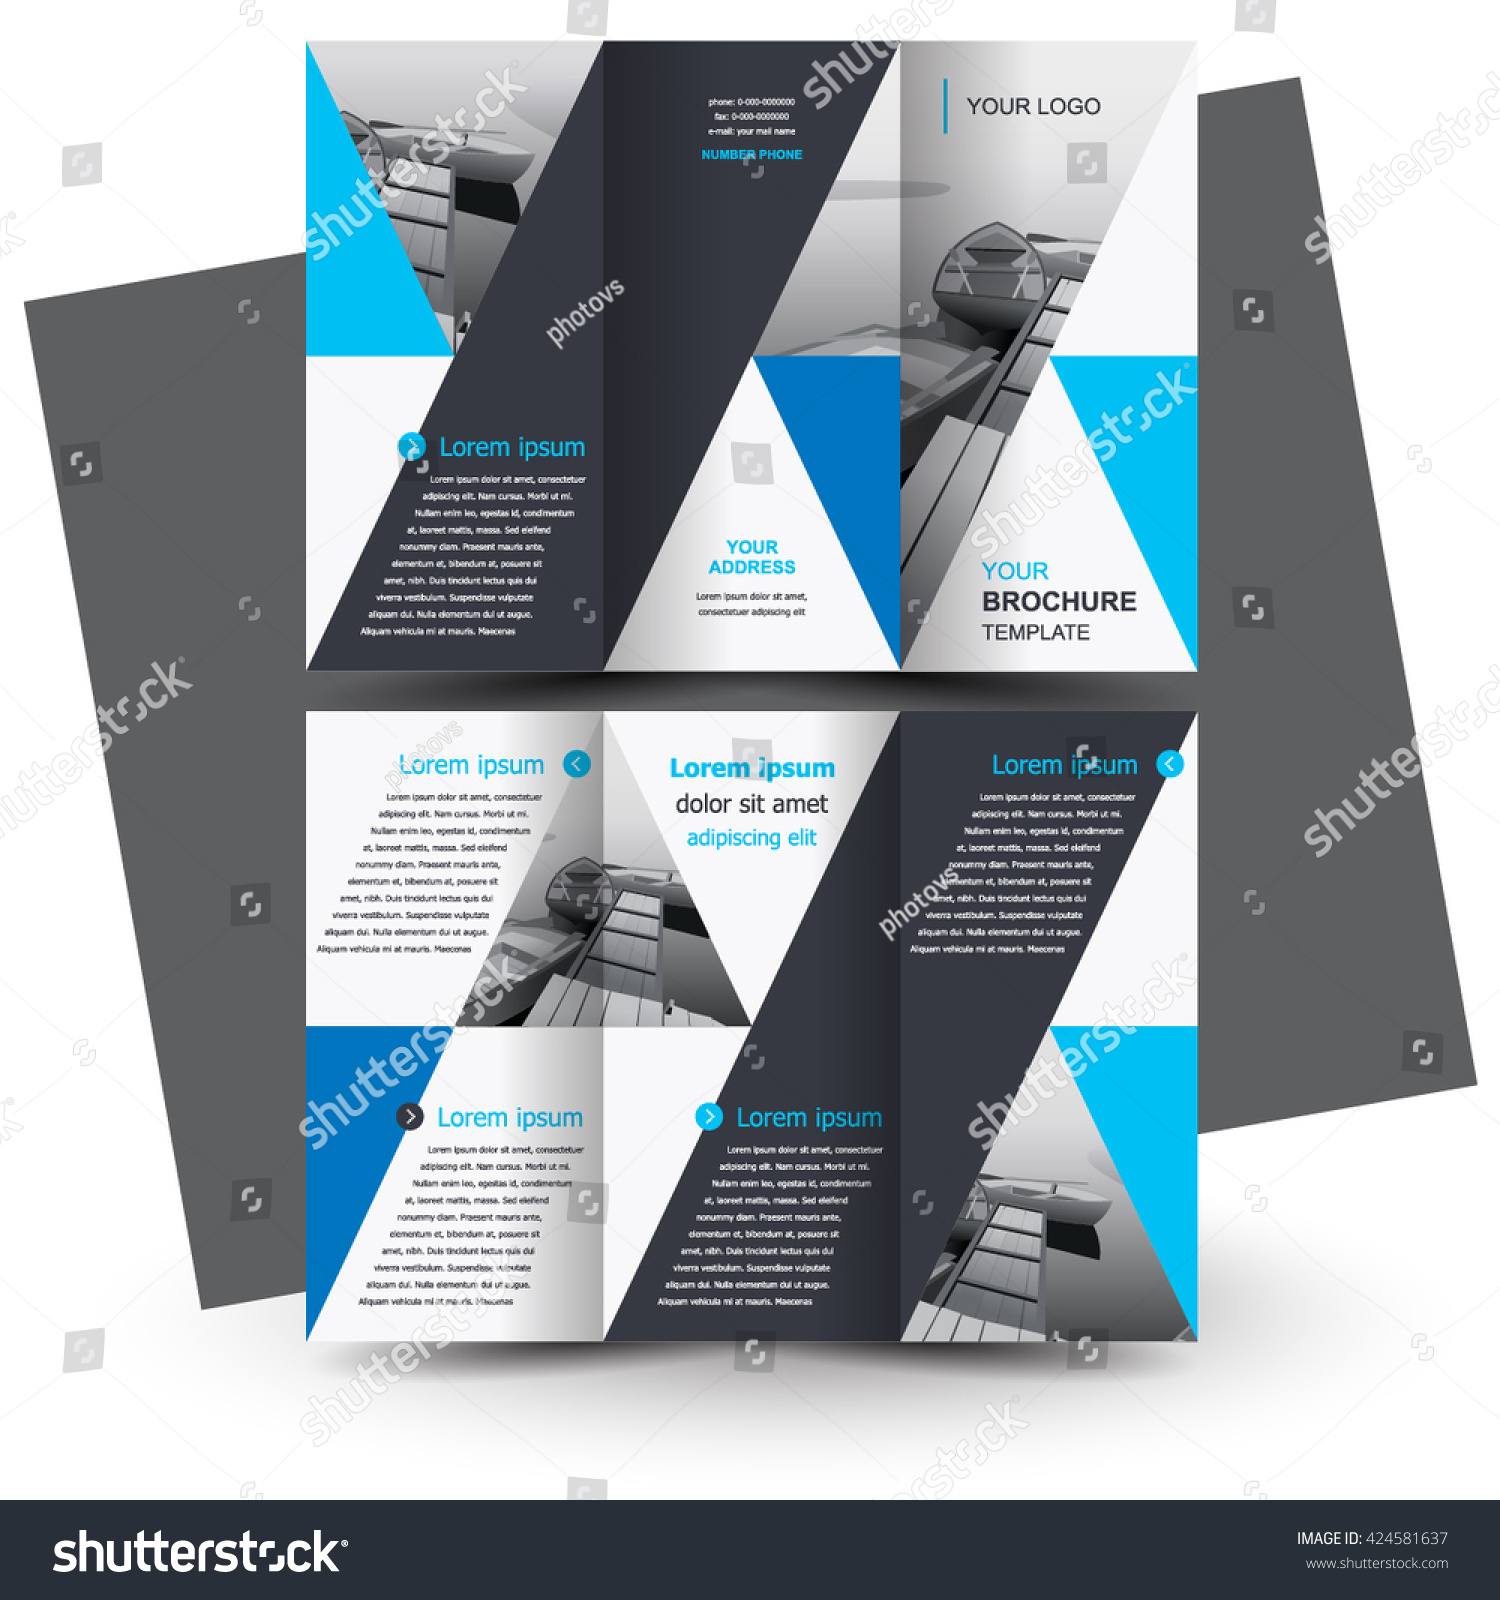 Creative Brochure Design Templates: Brochure Design Business Brochure Template Creative Stock